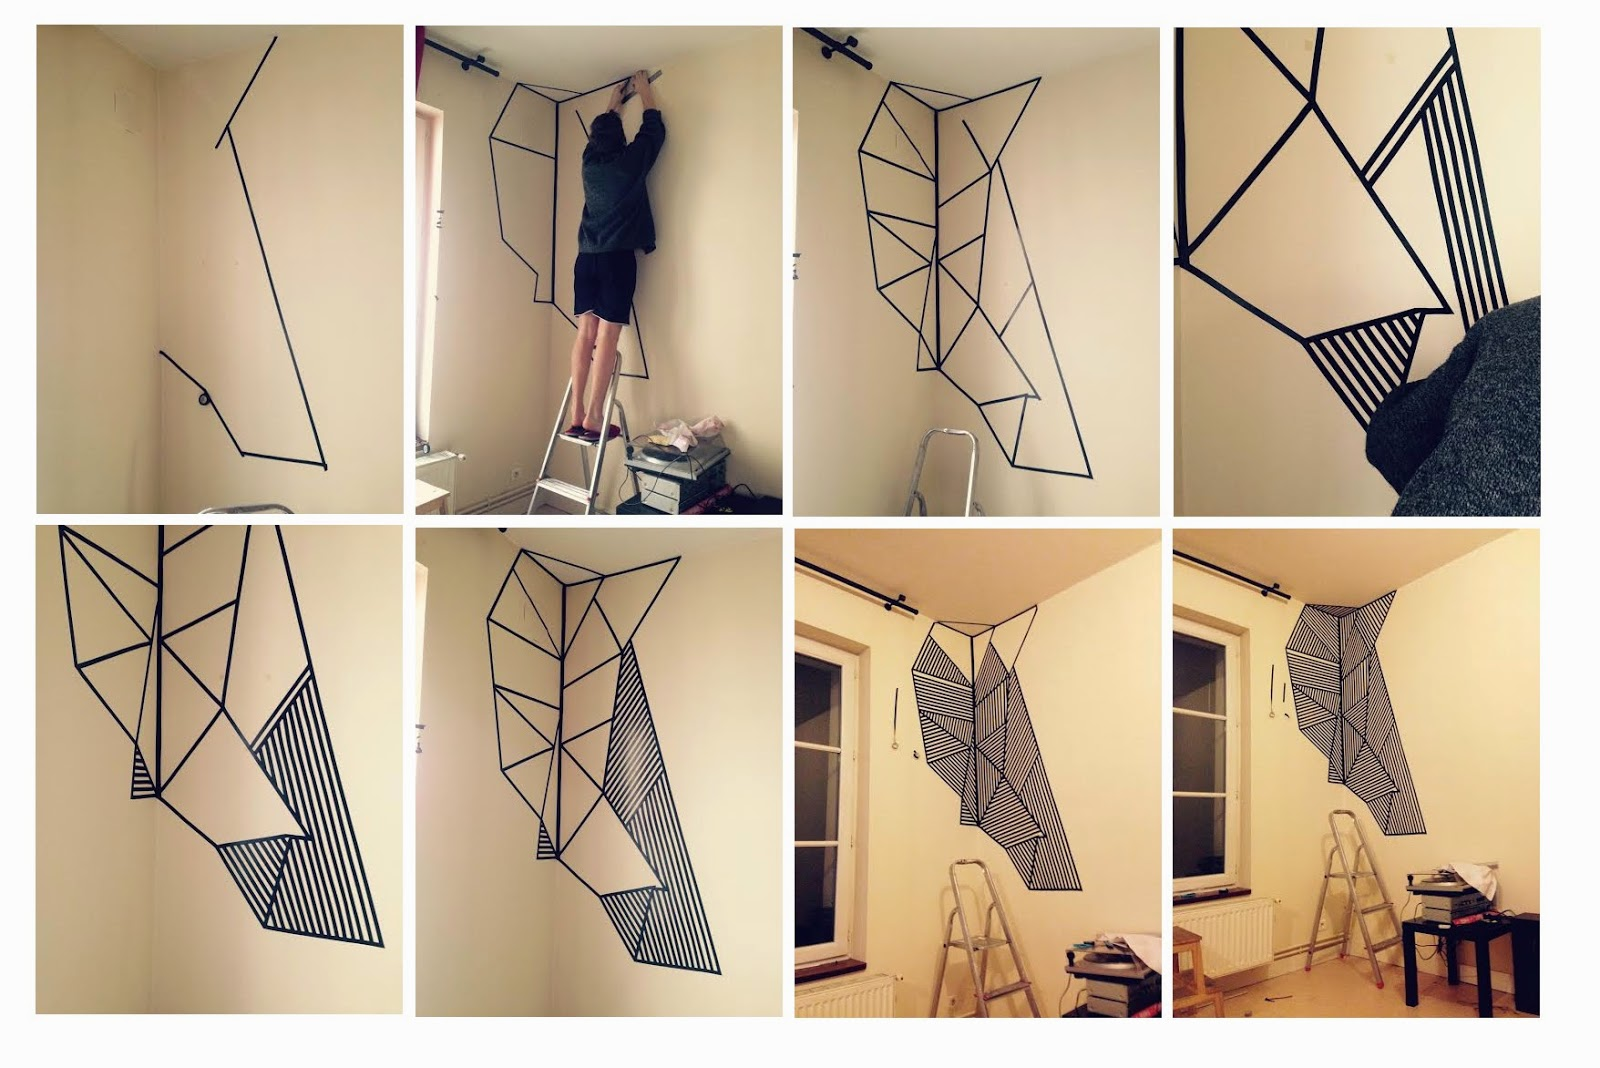 rouquine lunettes le mur en masking tape. Black Bedroom Furniture Sets. Home Design Ideas